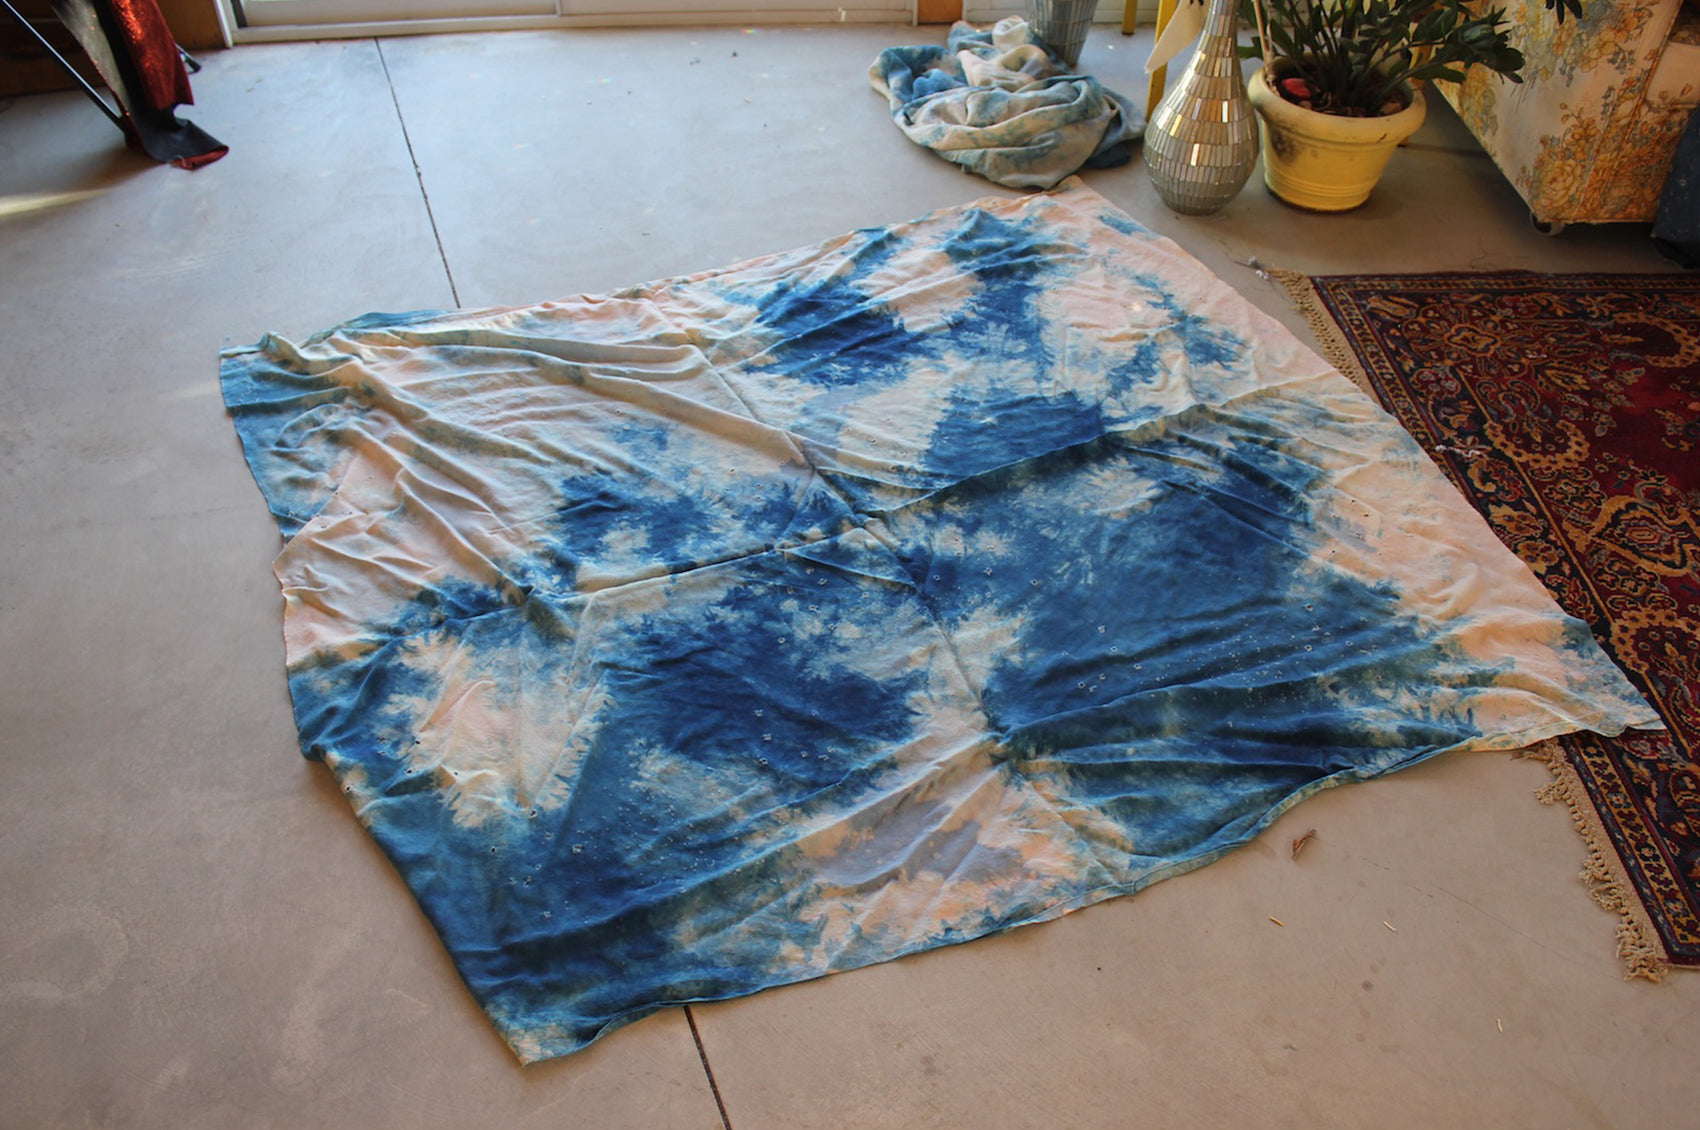 Blue and white tie-dye fabric on the floor of the studio.